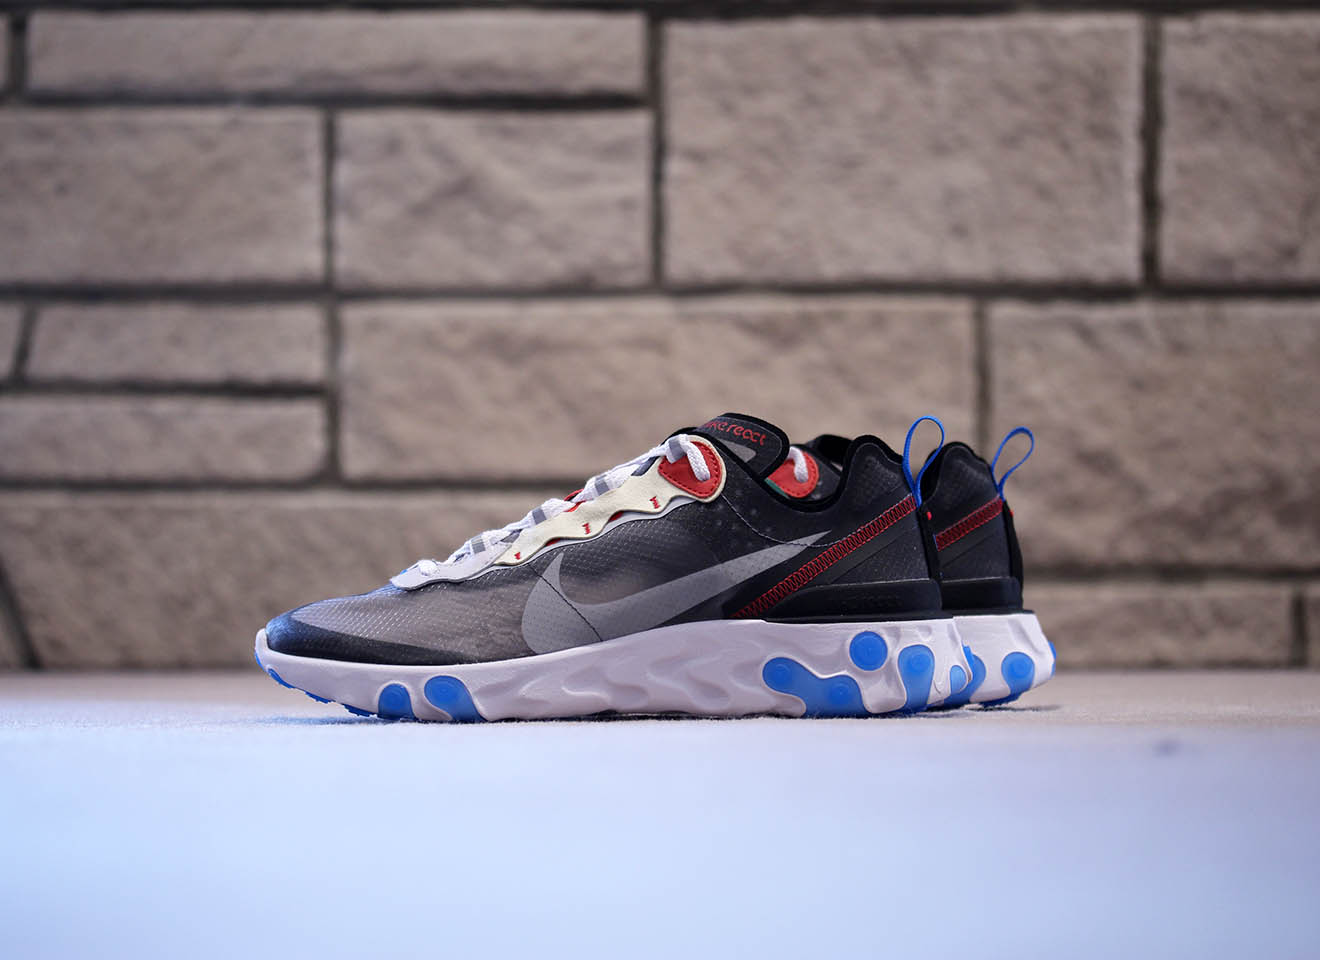 nike-react-element-87-aq1090-003-release-20180814